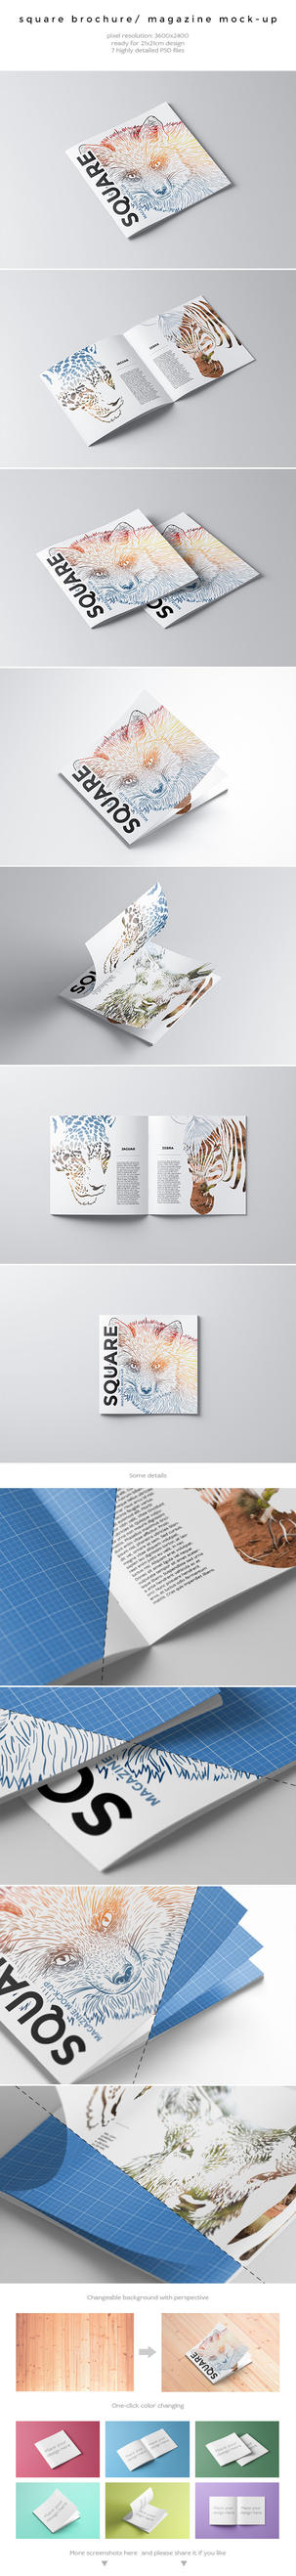 Square Brochure / Magazine Mock-Up by kotulsky